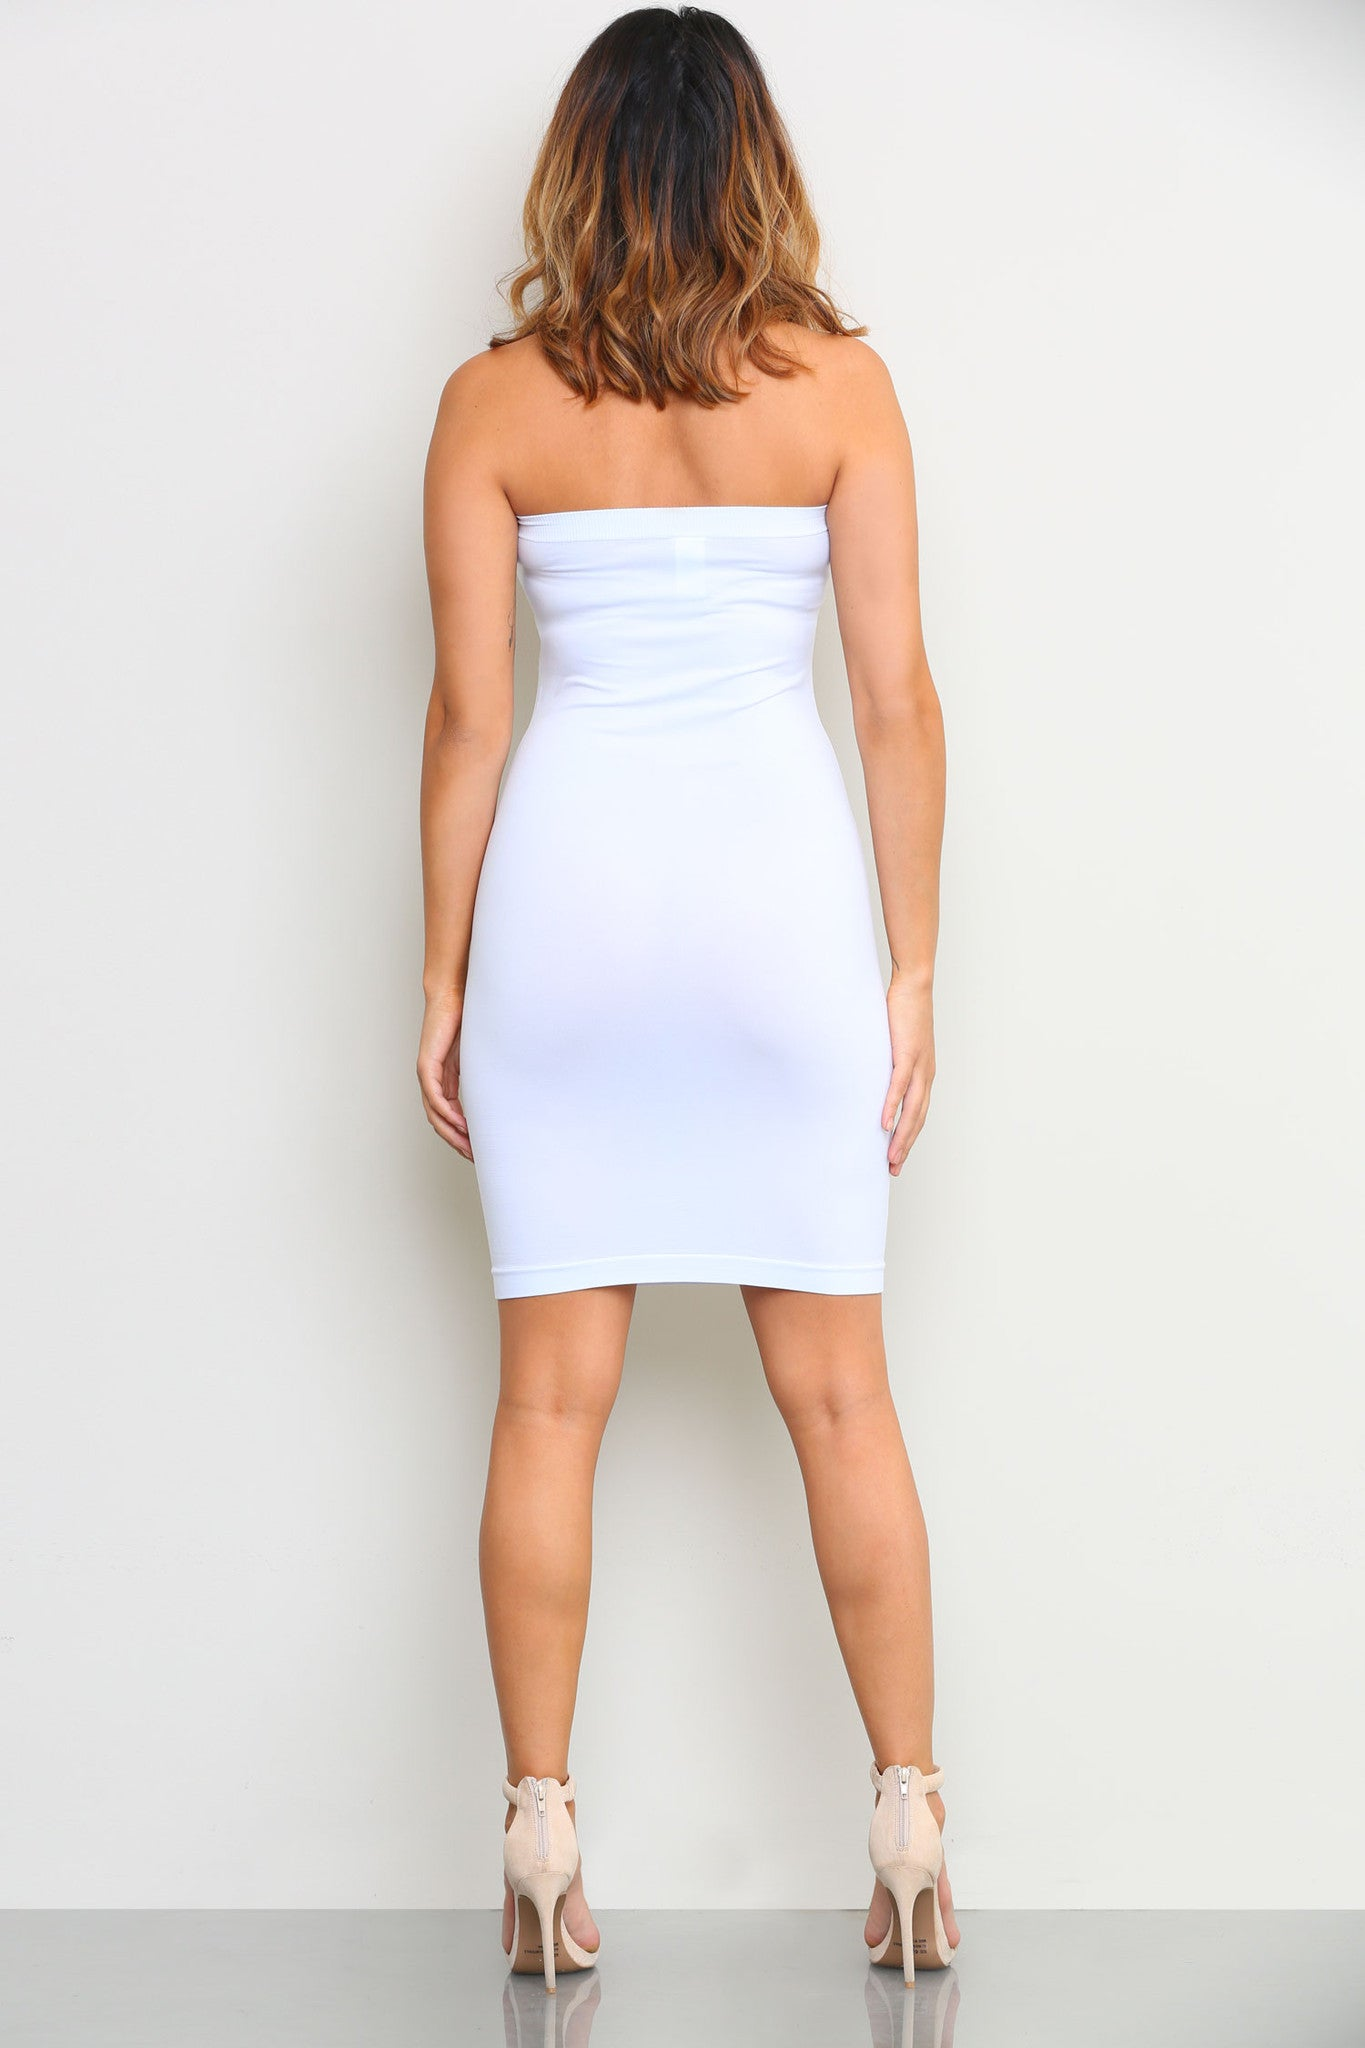 ASHLEIGH SLIPDRESS - Glam Envy - 3